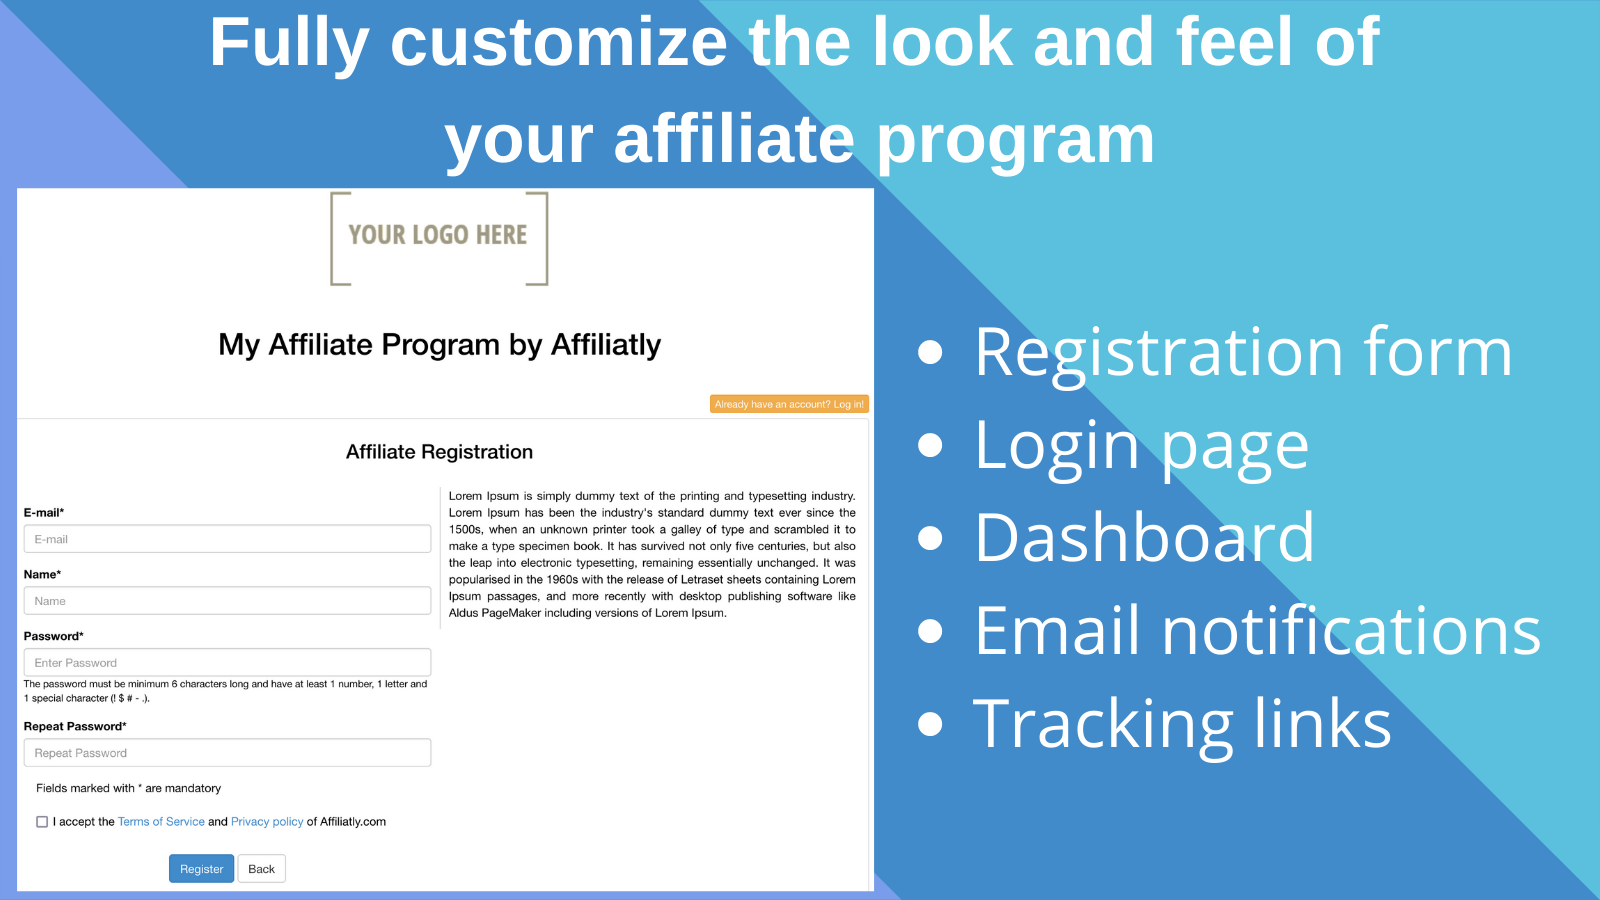 Fully customize the look and feel of your affiliate program